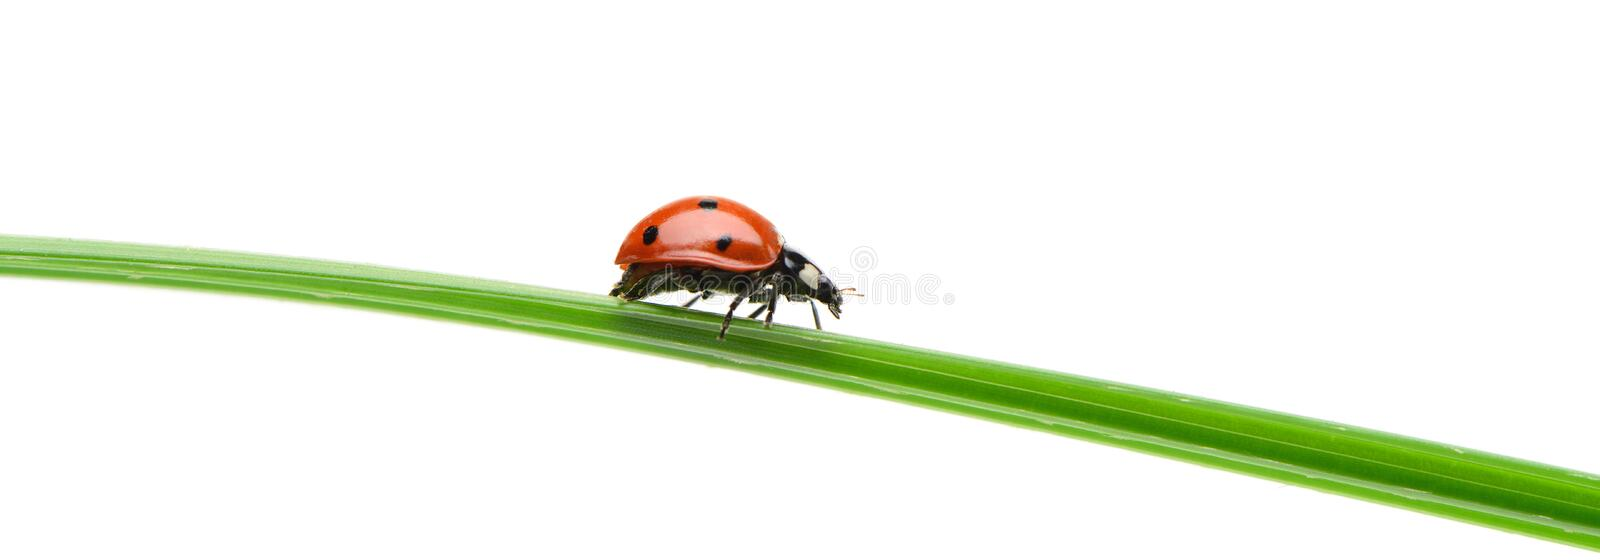 Ladybug on a green blade of grass. Isolated on white background royalty free stock image